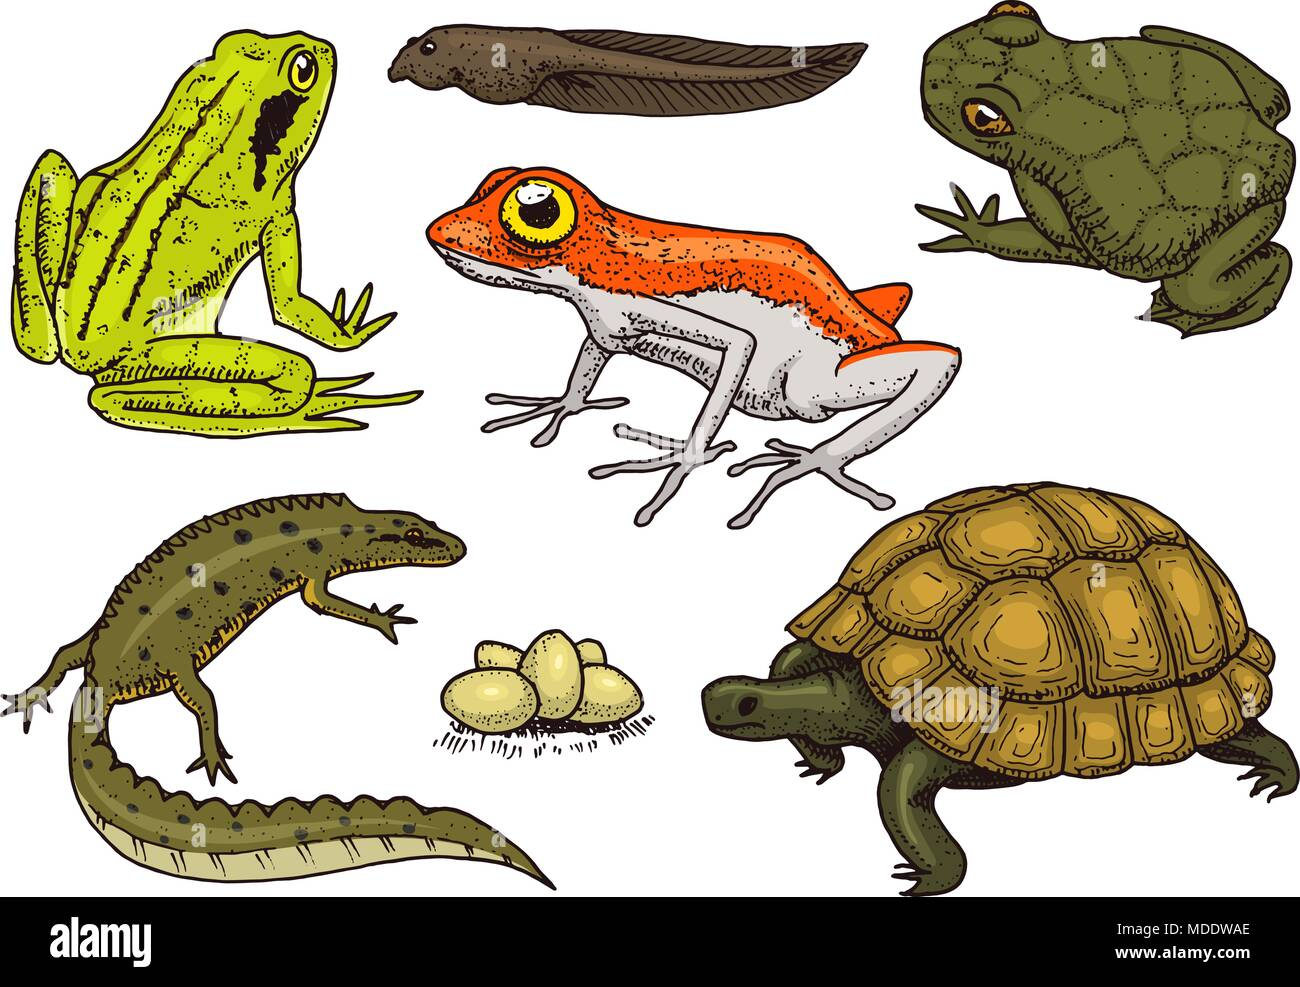 reptiles and amphibians set pet and tropical animals wildlife and rh alamy com Loveland Lizard Lizard Food